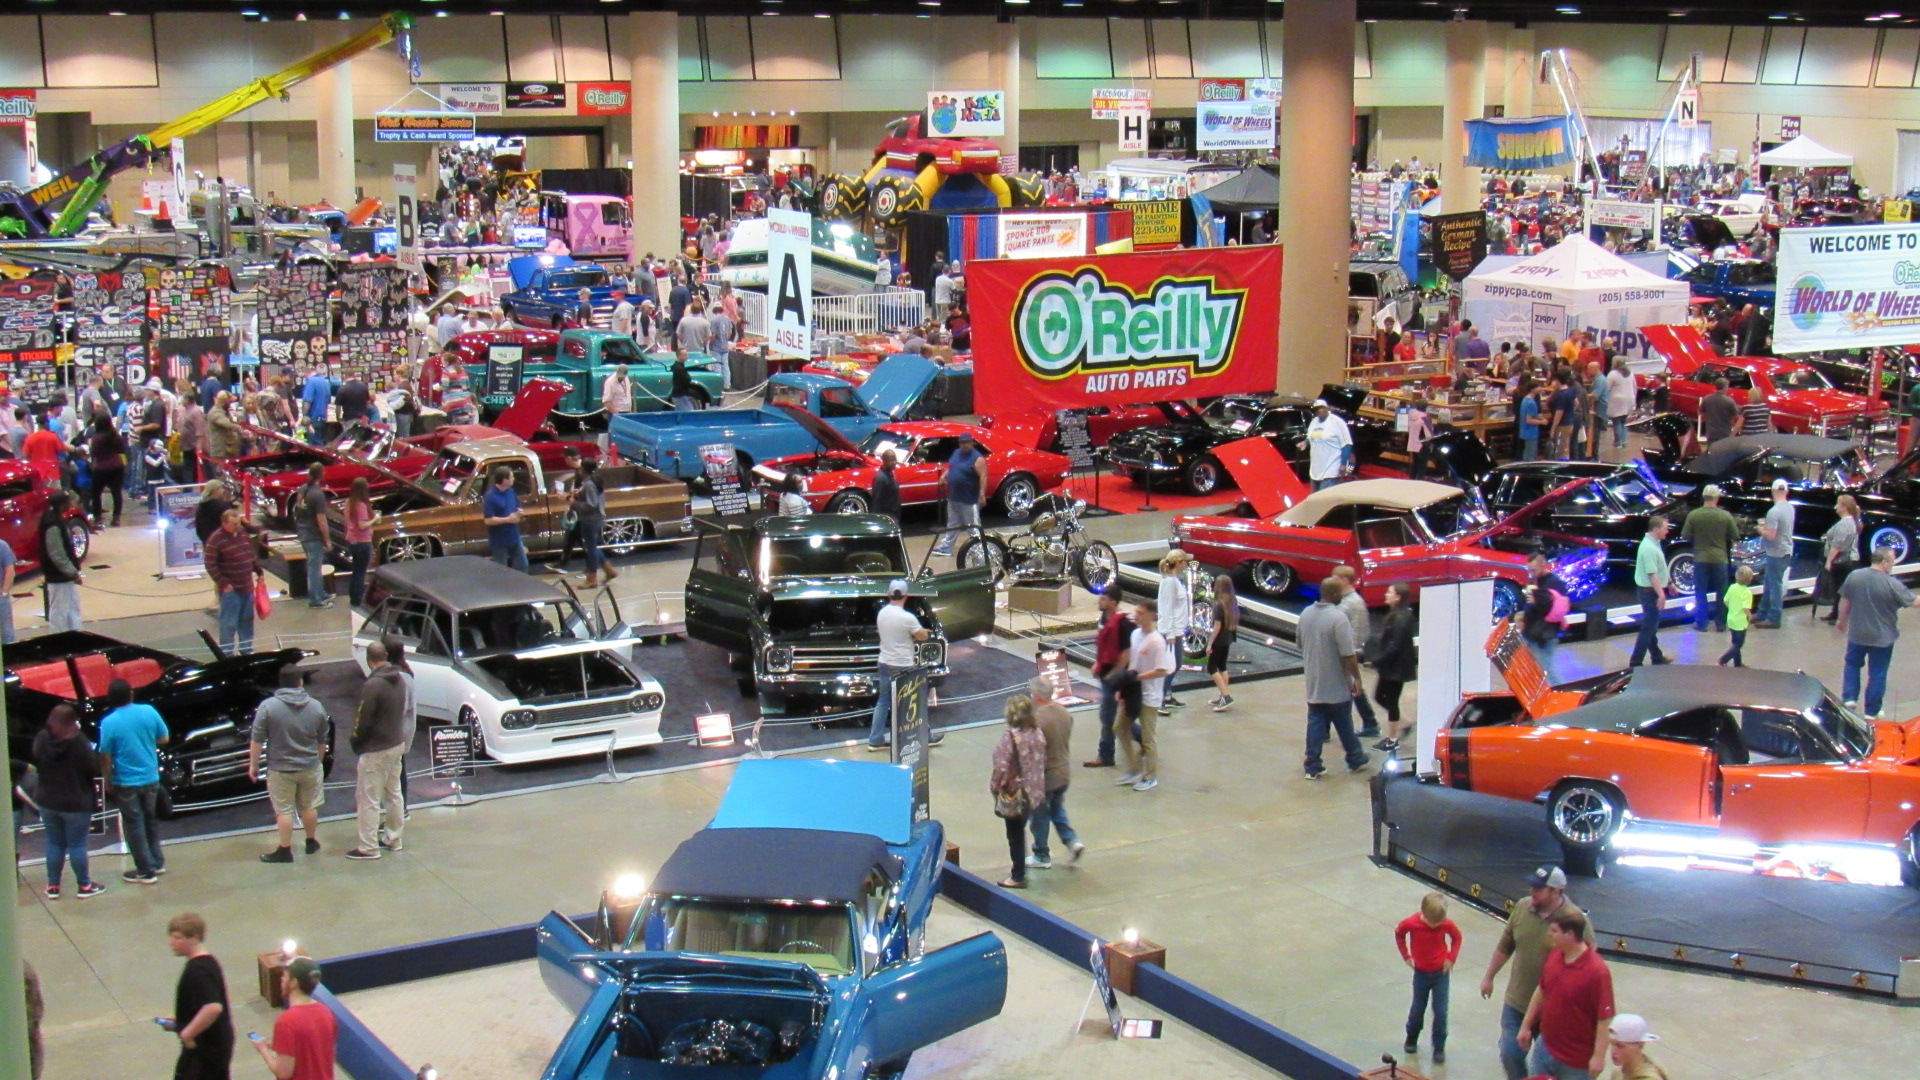 OReilly Auto Parts World Of Wheels The RPM Standard - O reilly car show